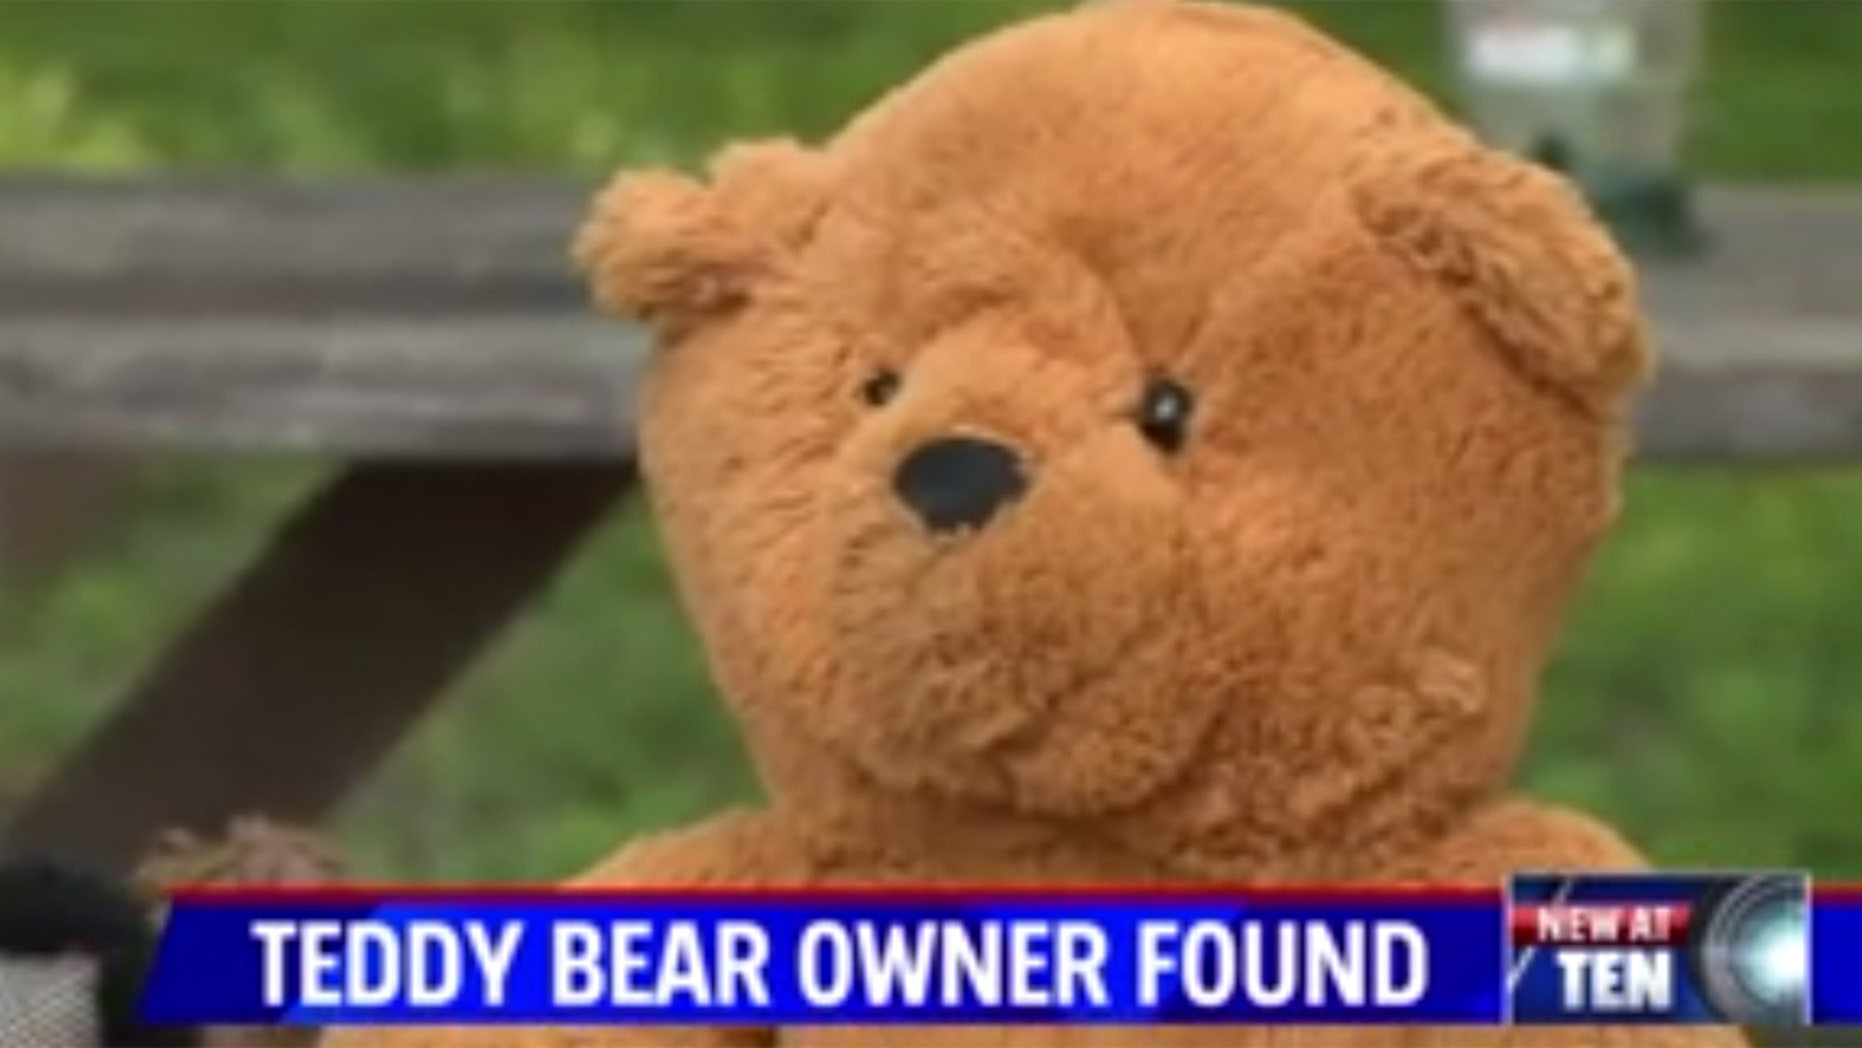 The mystery surrounding a lost teddy bear in Indiana has been solved.